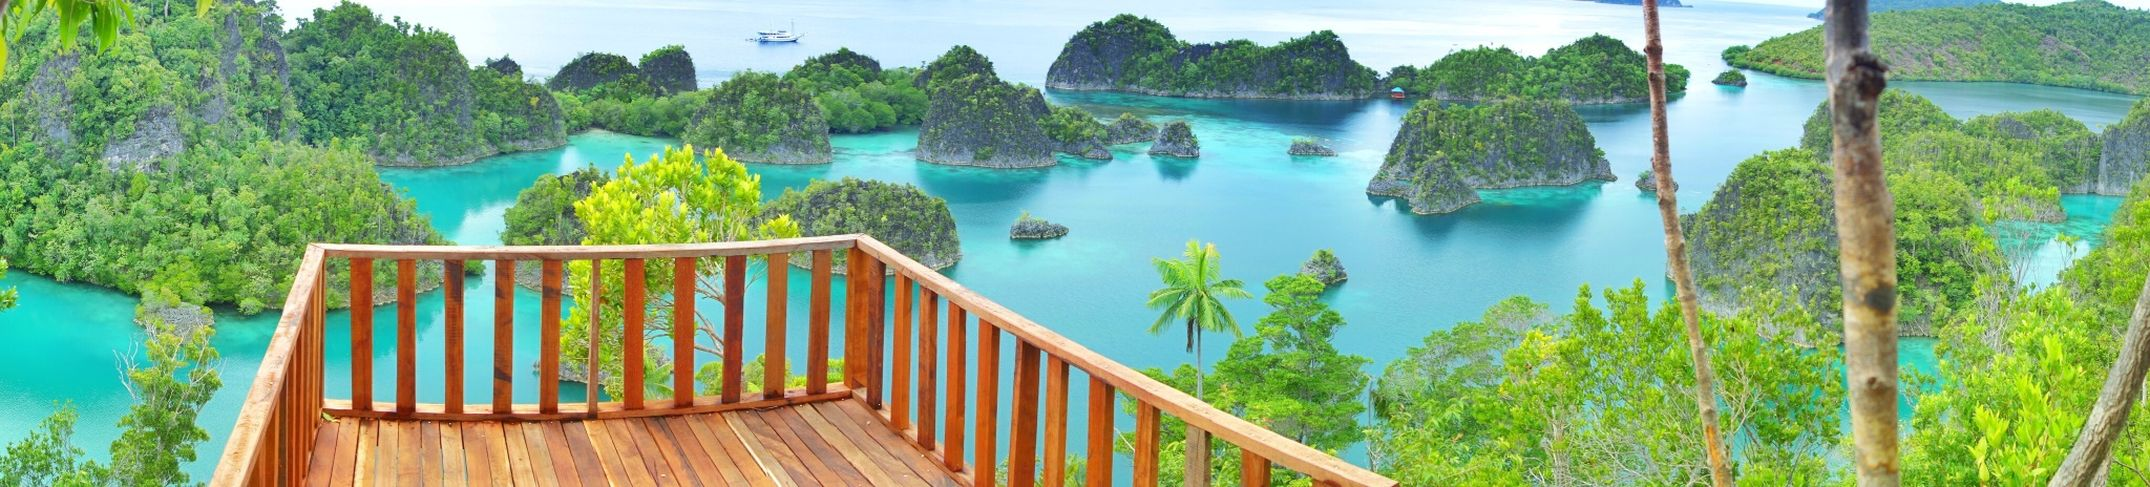 took this Panorama when i was in Raja Ampat Papua INDONESIA i really want to go back ?